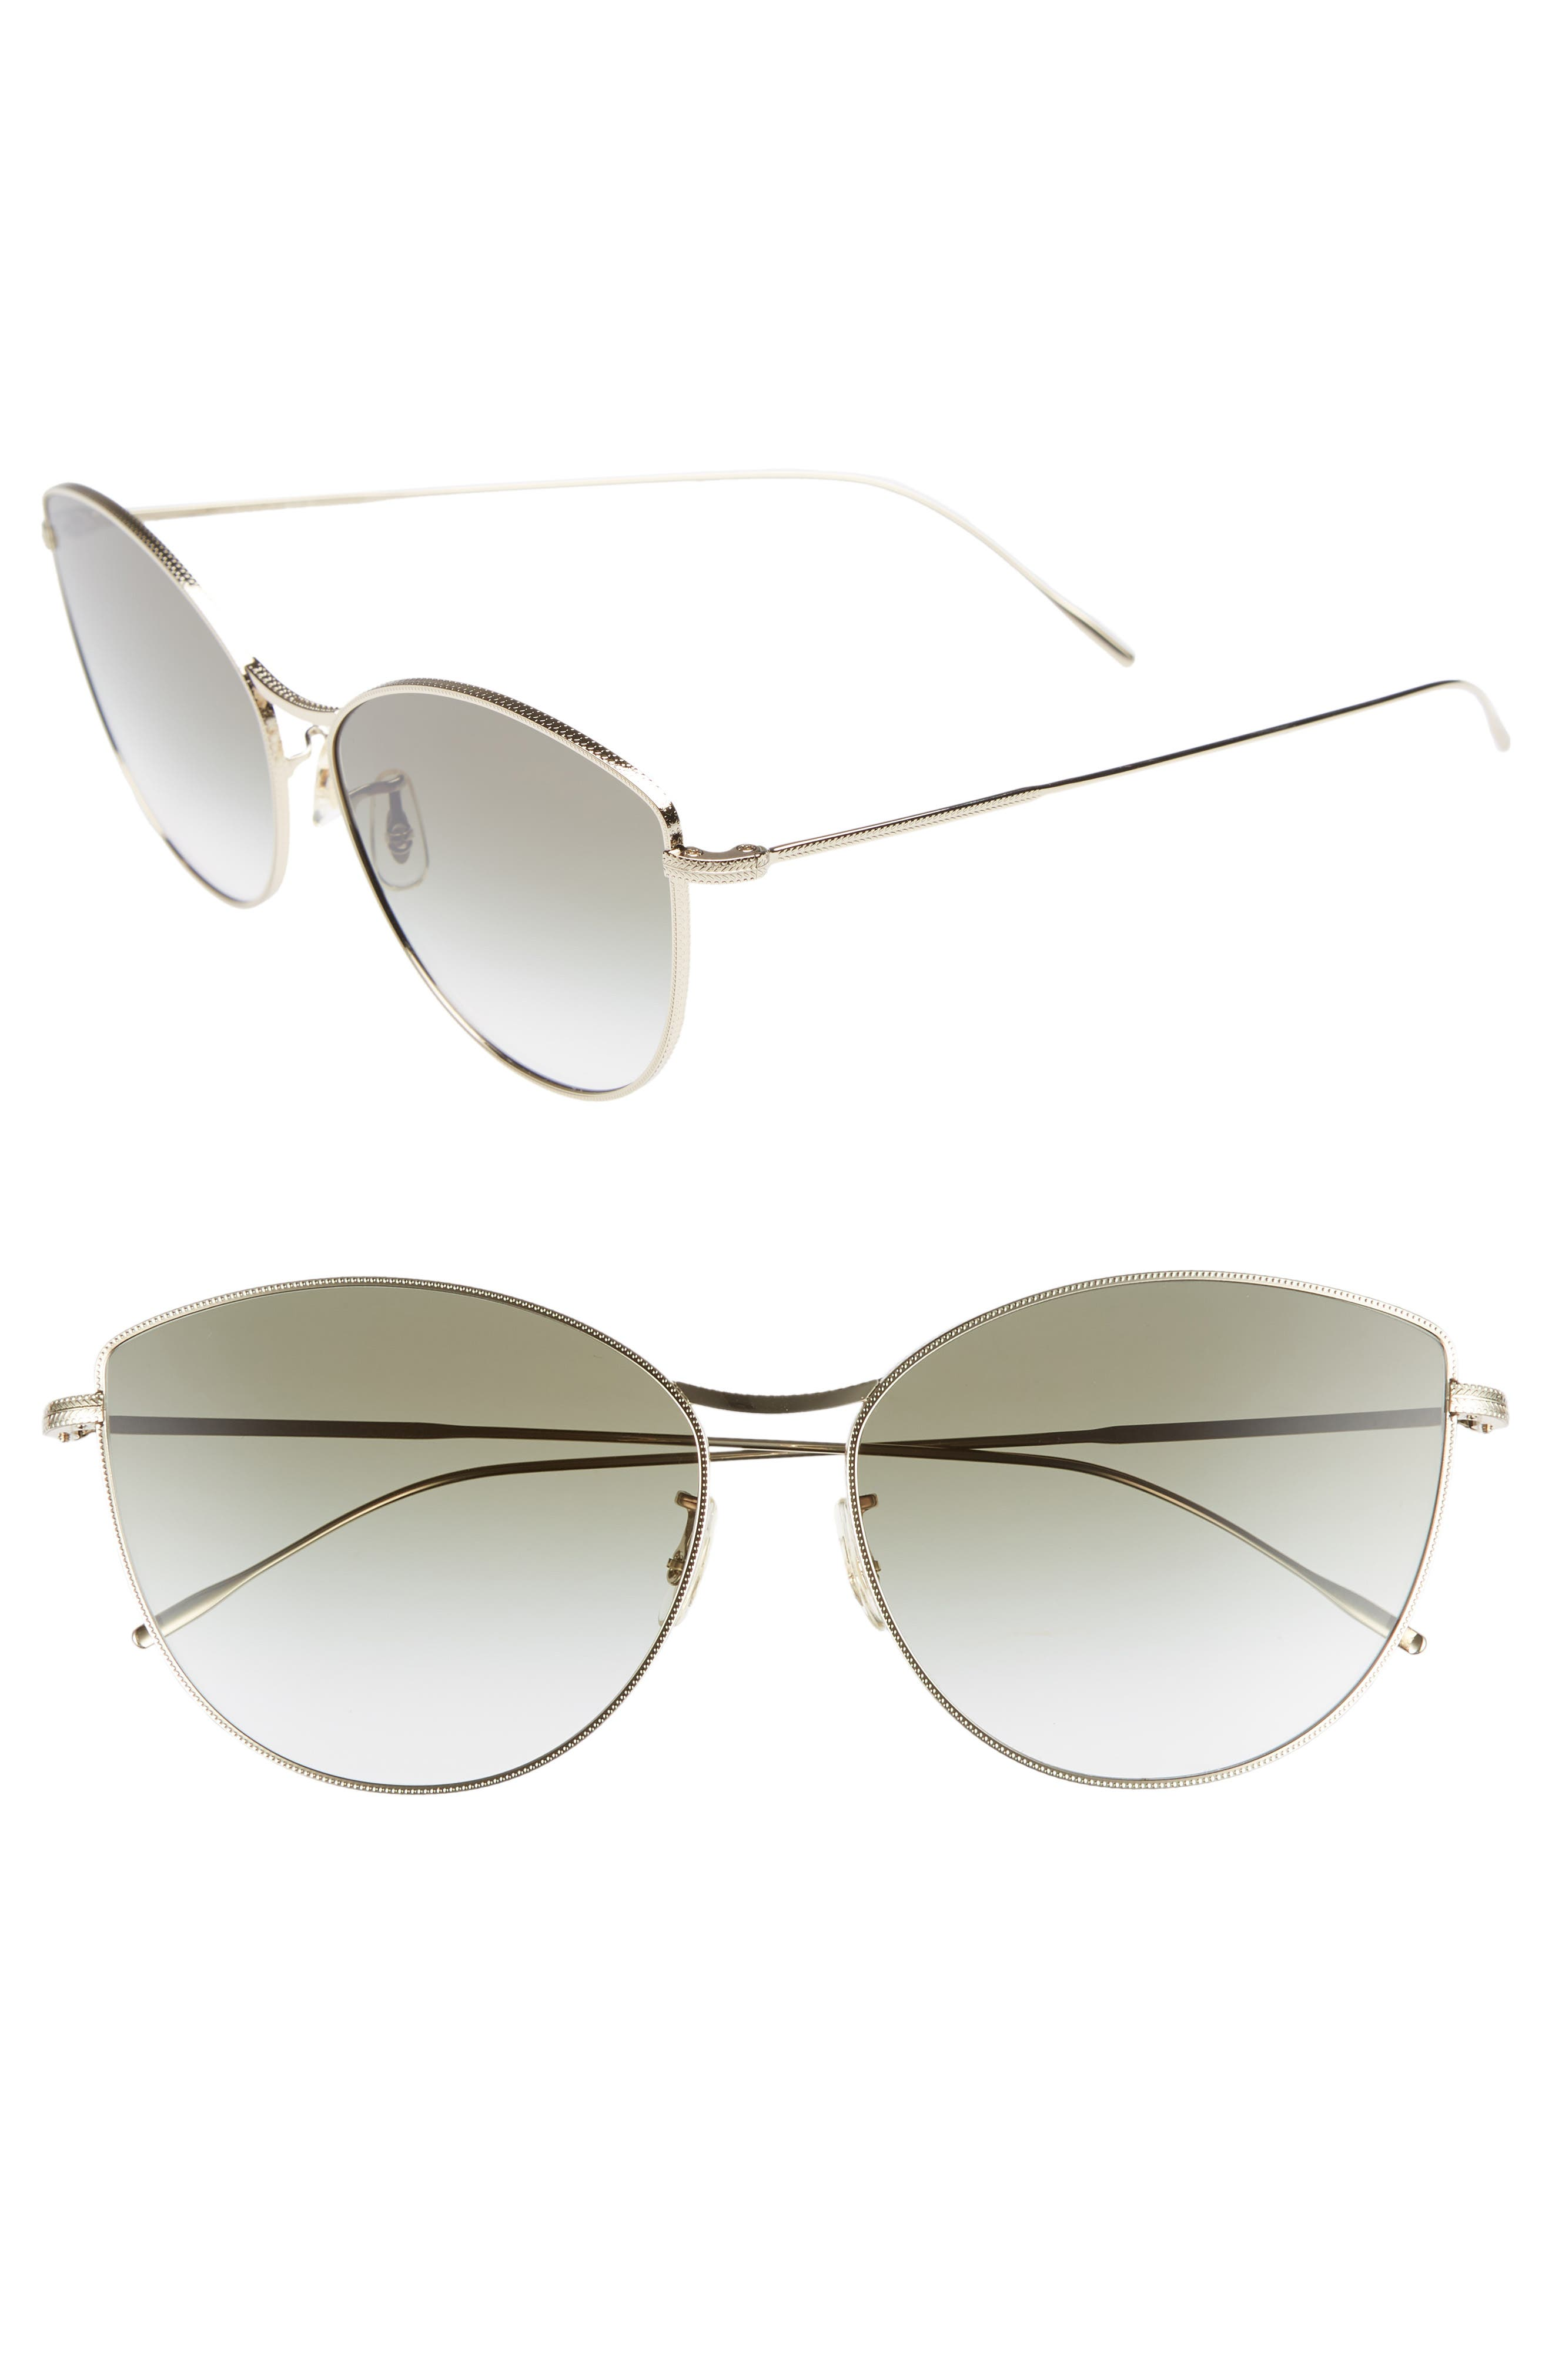 Rayette 60mm Cat Eye Sunglasses,                         Main,                         color, Soft Gold Olive